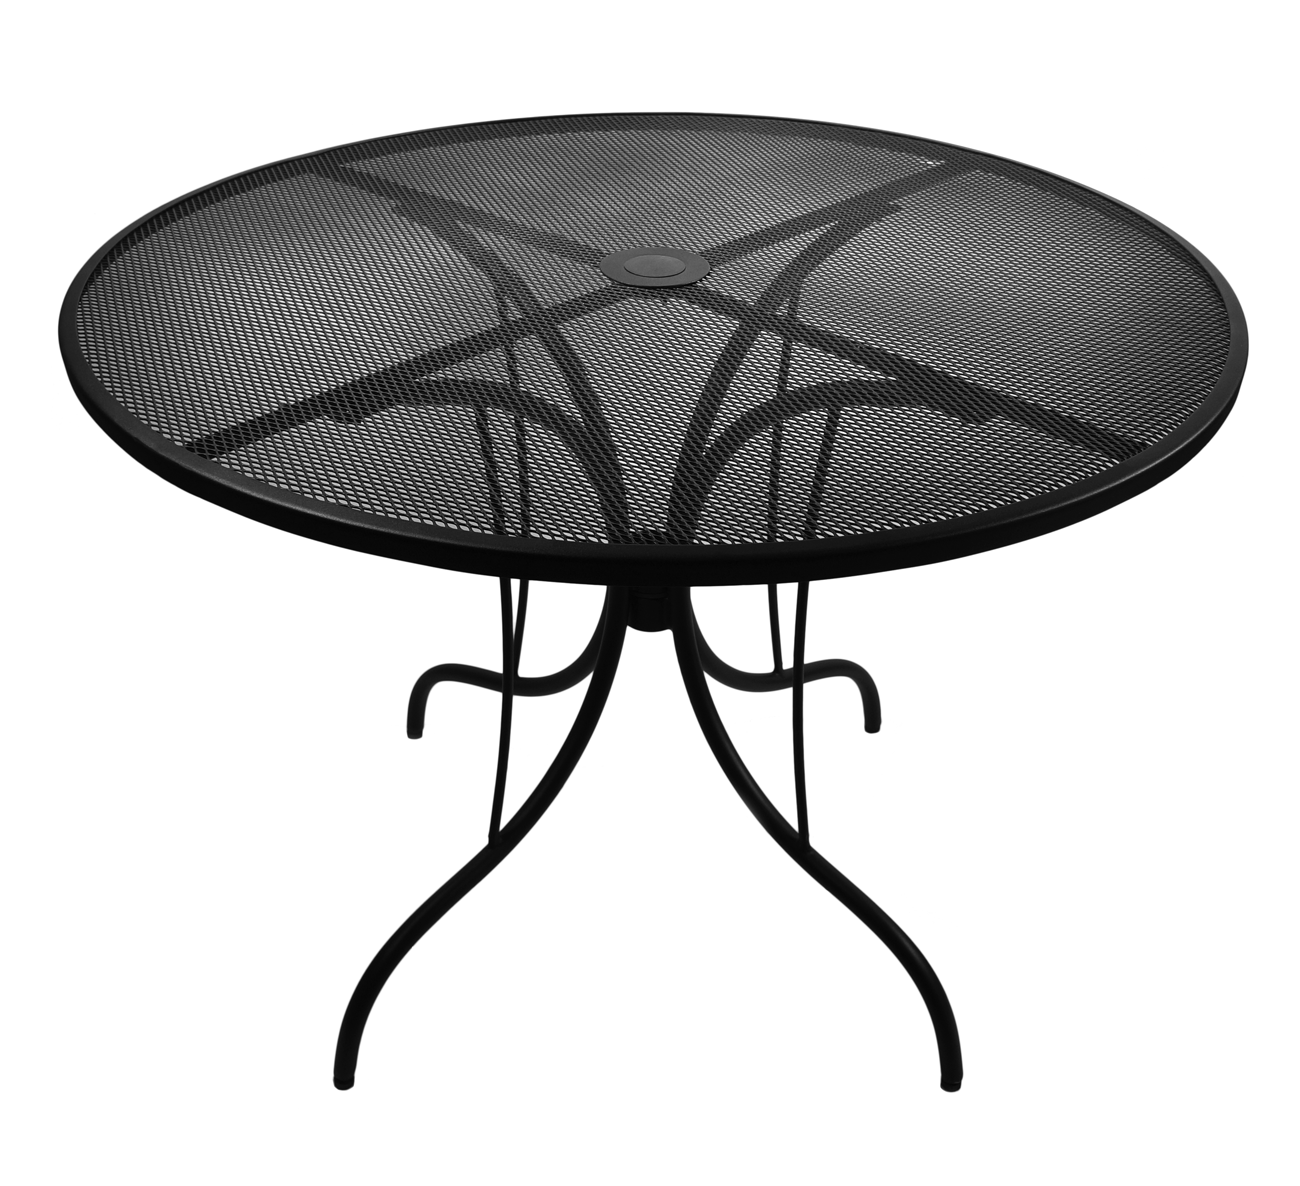 This galvanized, powder coated steel mesh commercial outdoor table ...